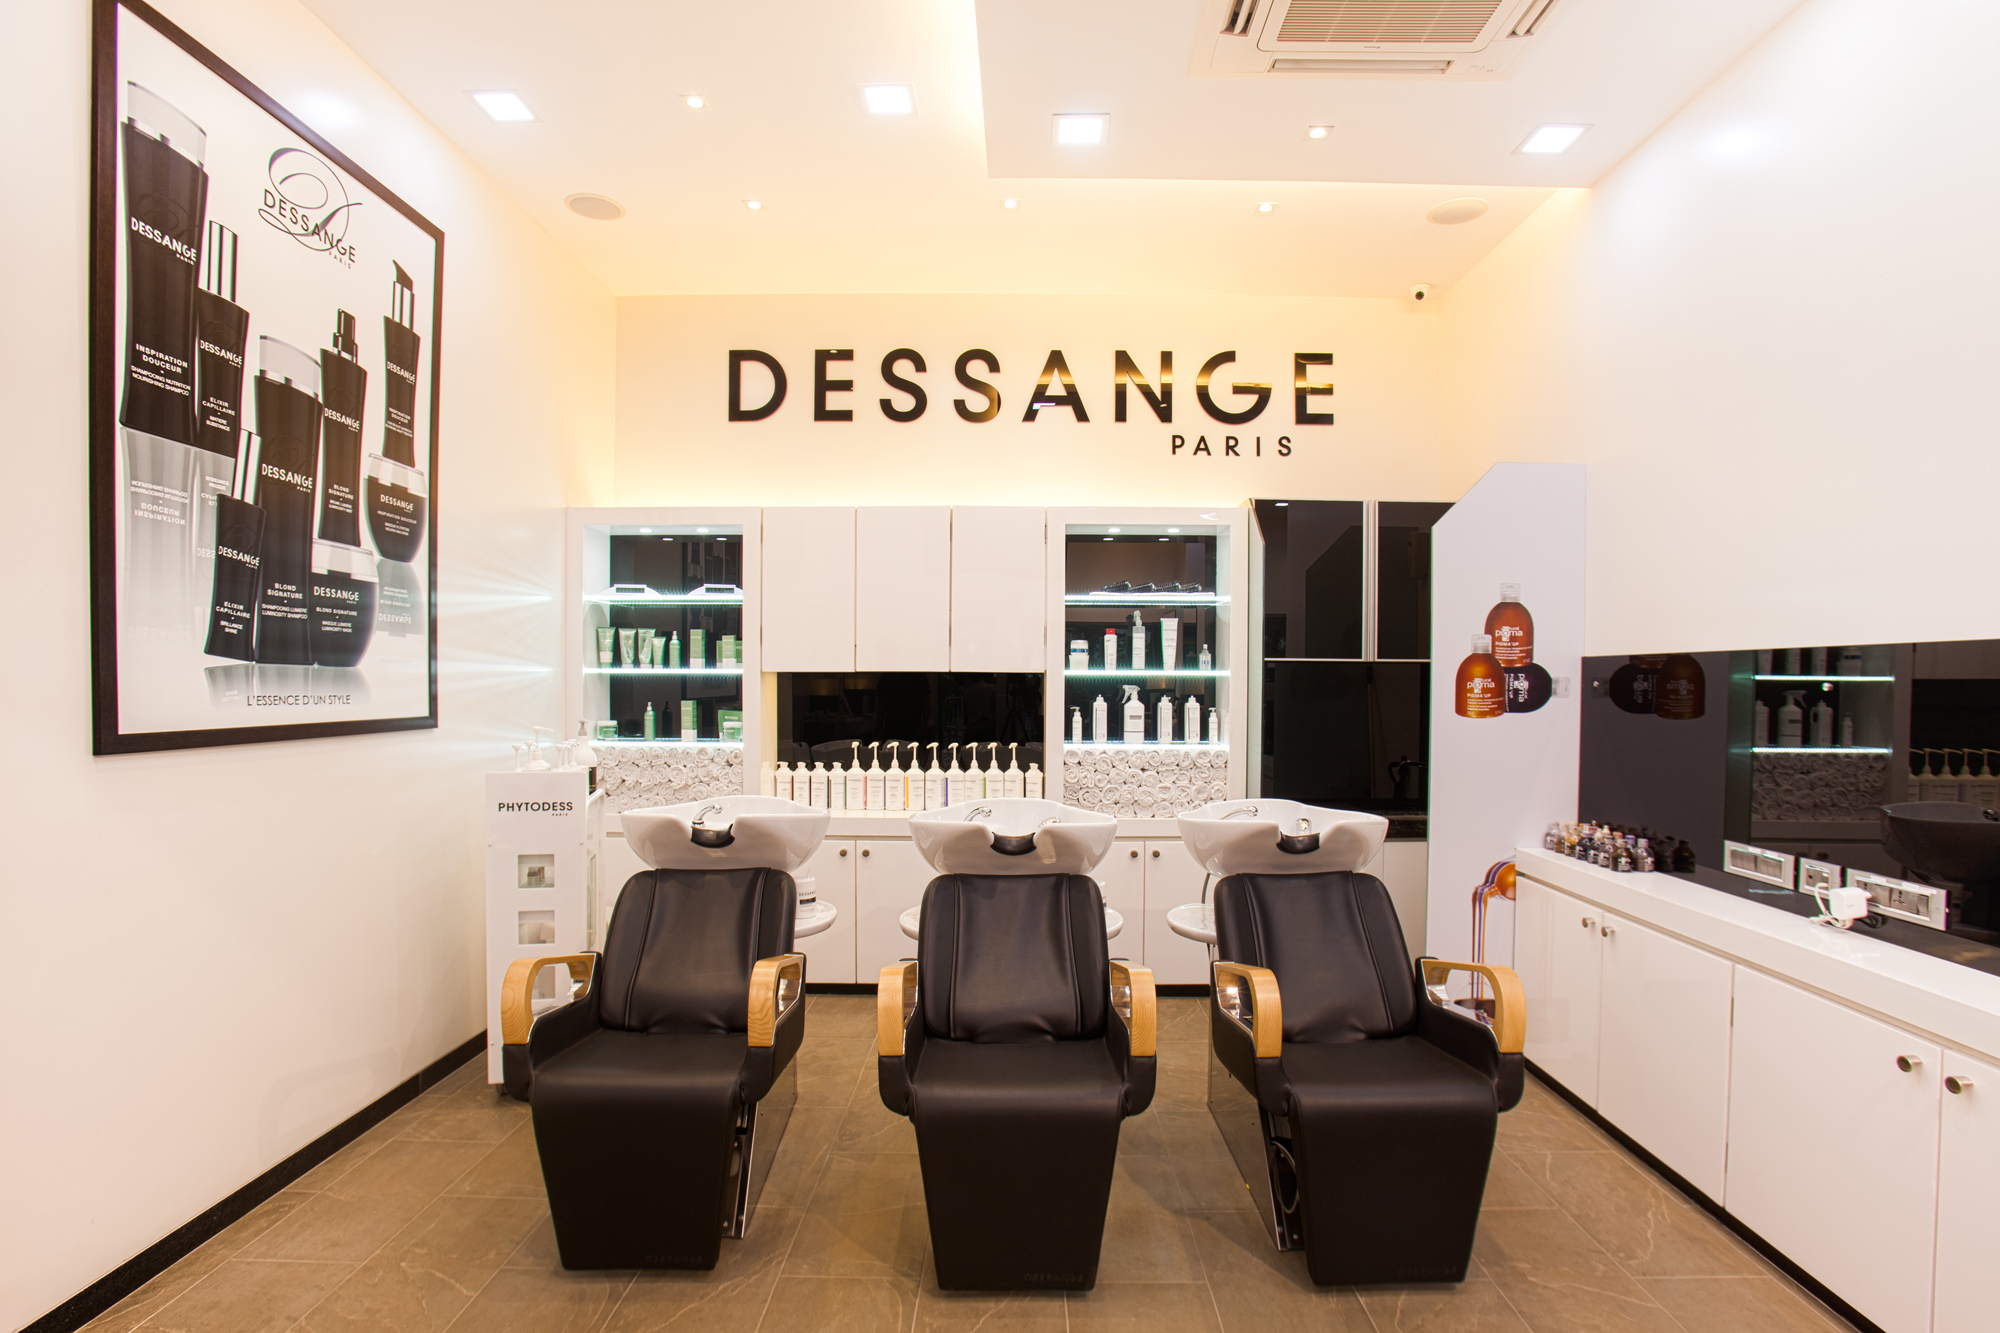 Hair Salon In Paris Beauty Gets A New Address Dessange Paris Comes To Mumbai